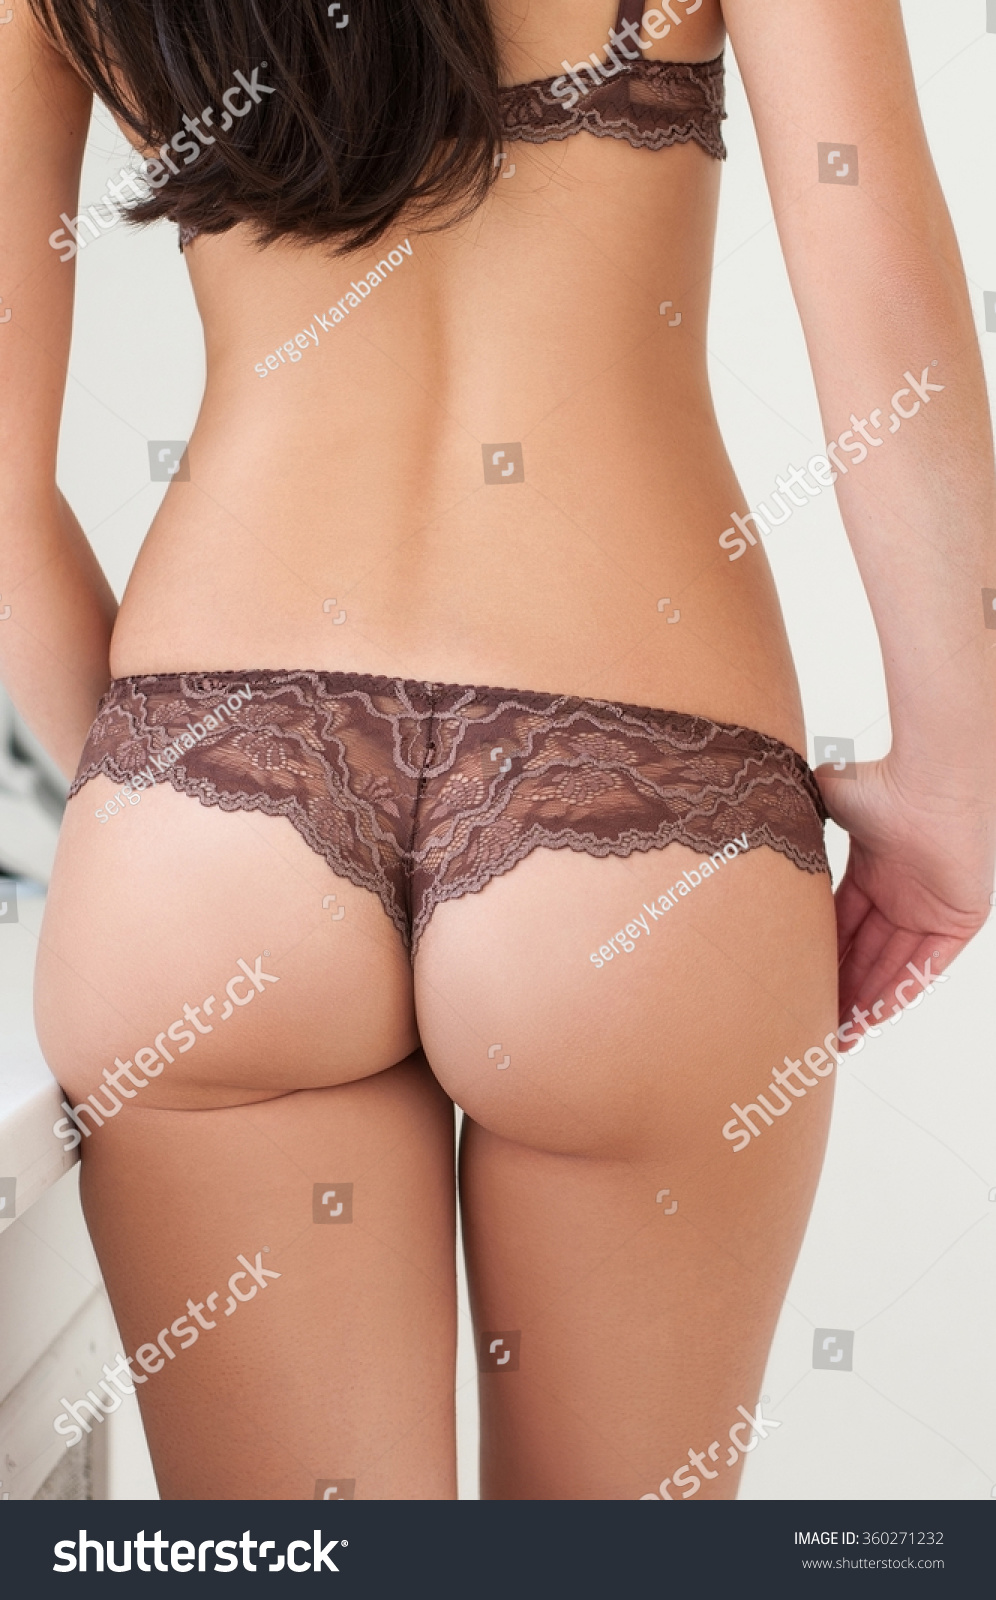 Ass Cute Pics female back lingerie cute ass openwork stock photo (edit now